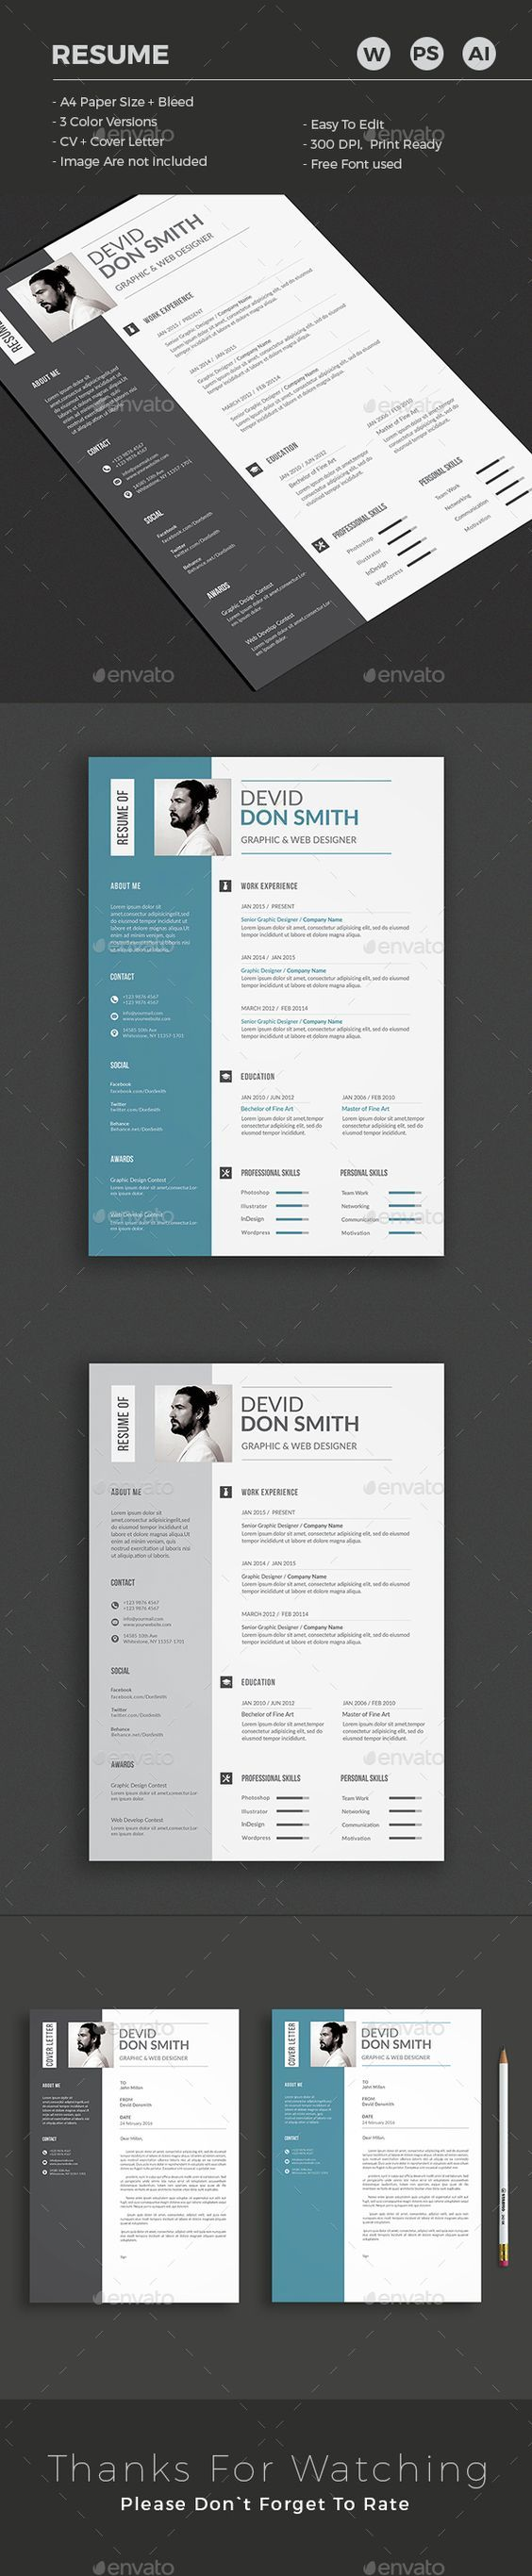 Free Creative Vintage Resume Design Template | Wix | Pinterest ...